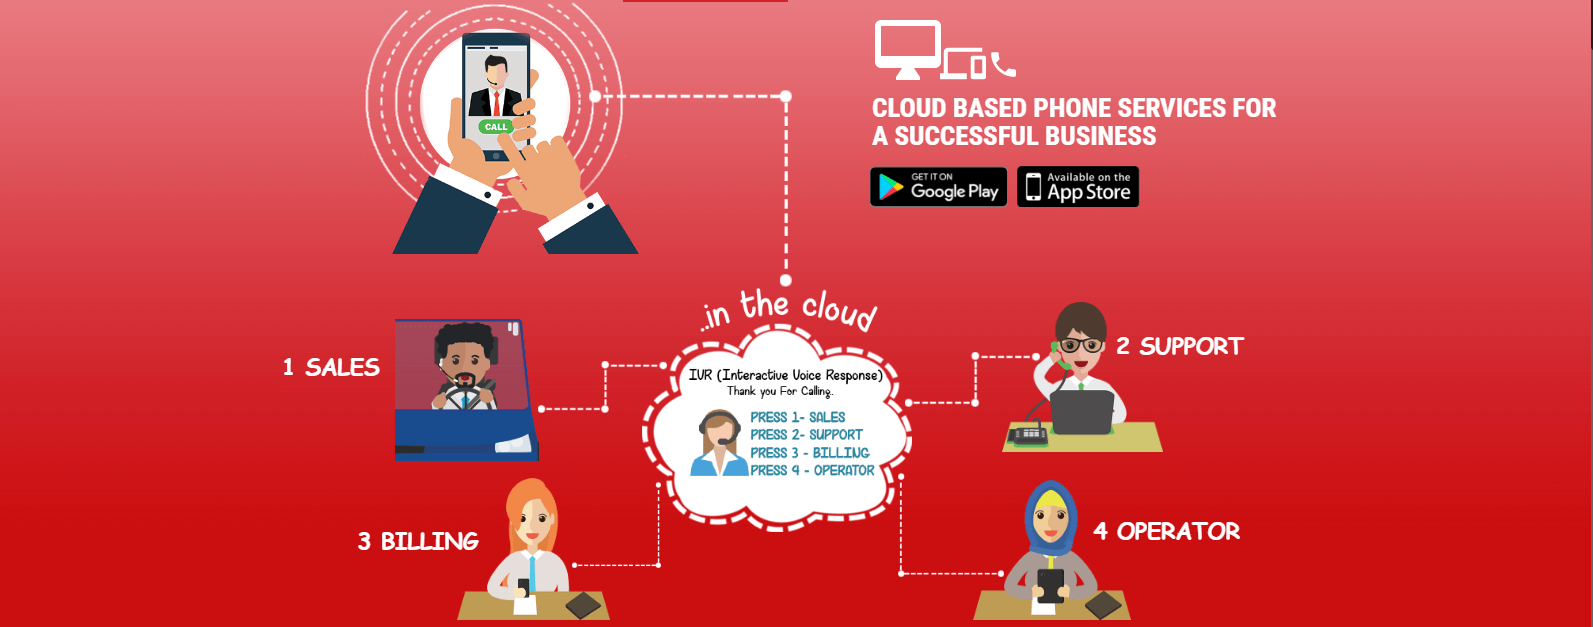 TRSMIcloud - Smart Affordable Phone Service